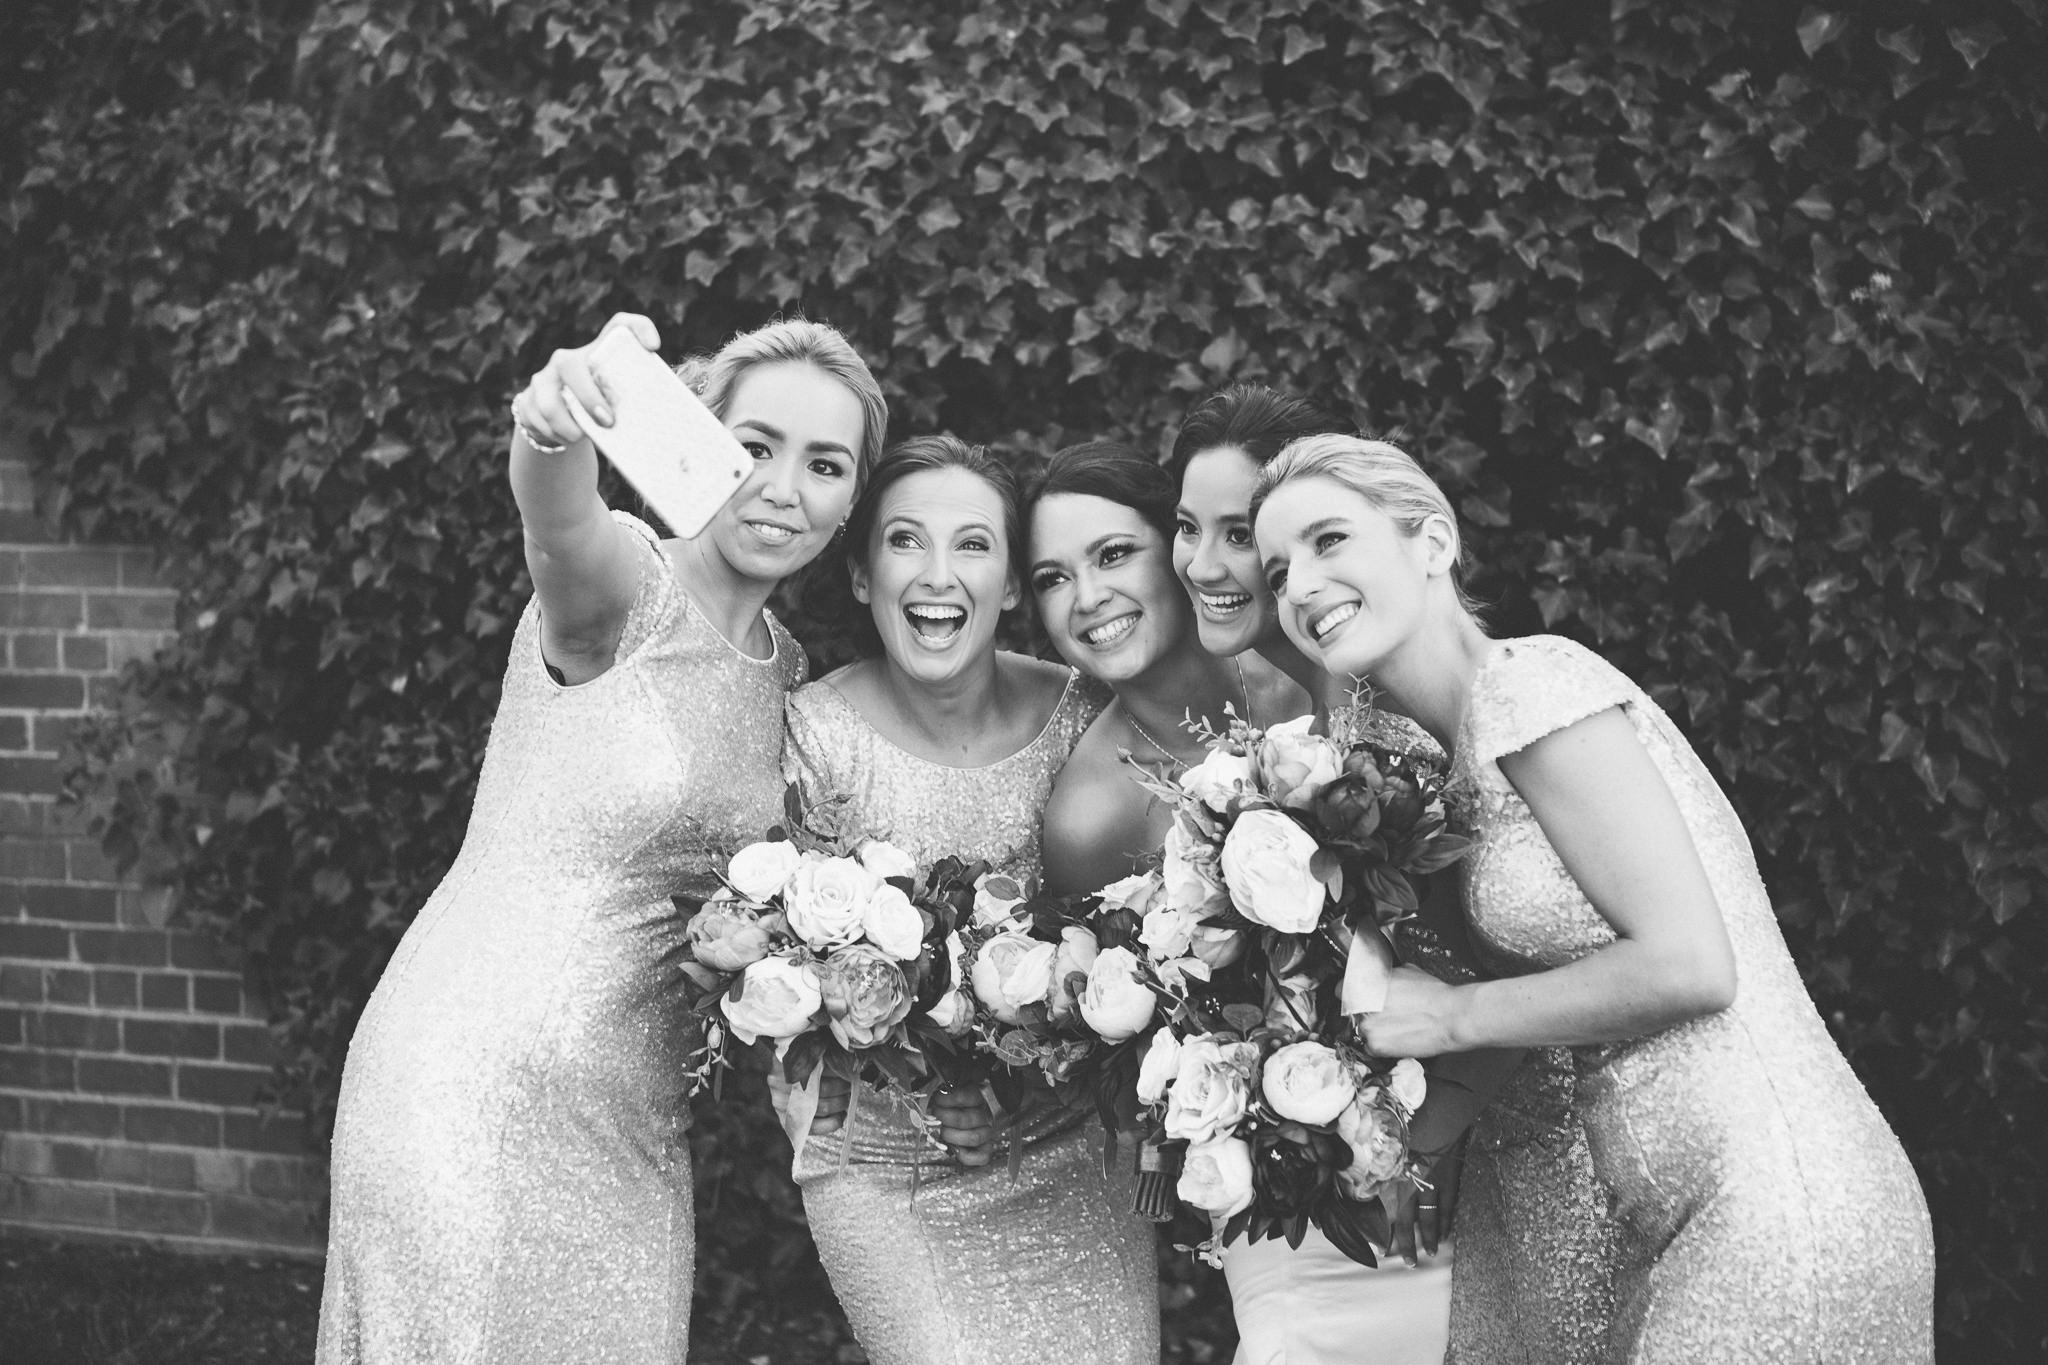 But first let's take a selfie on wedding day